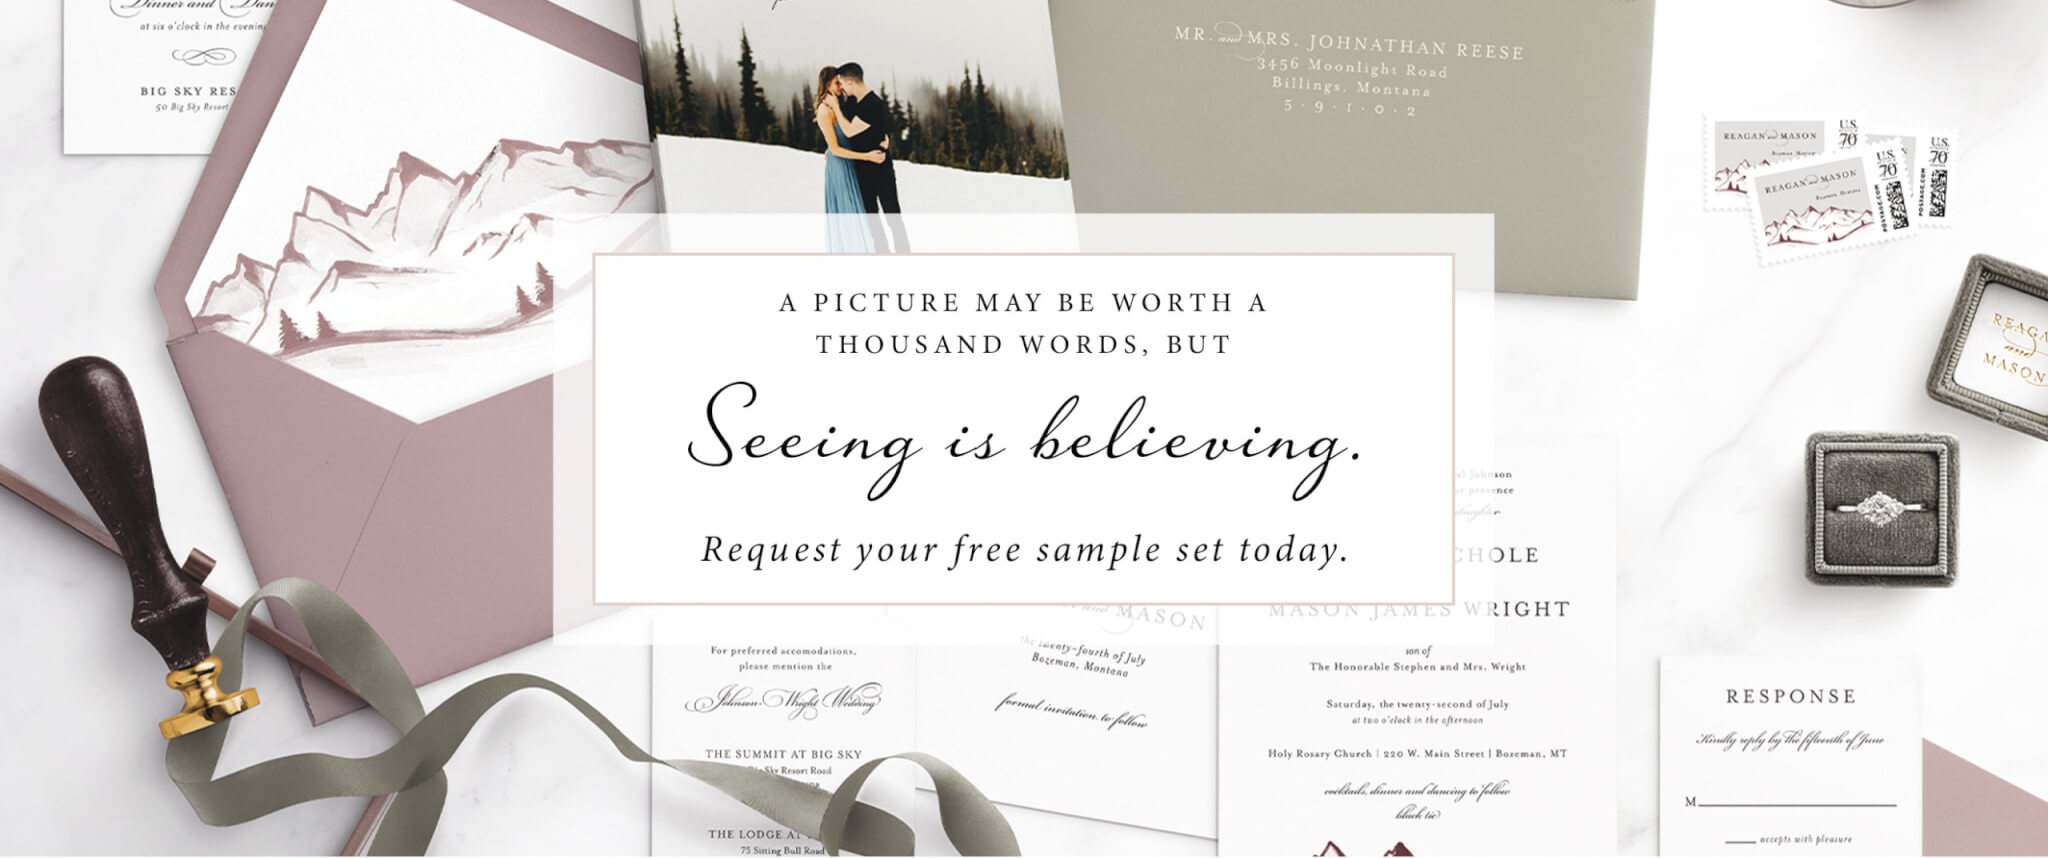 Free Wedding Invitation Samples | Luxe Quality | Seventh and Anderson